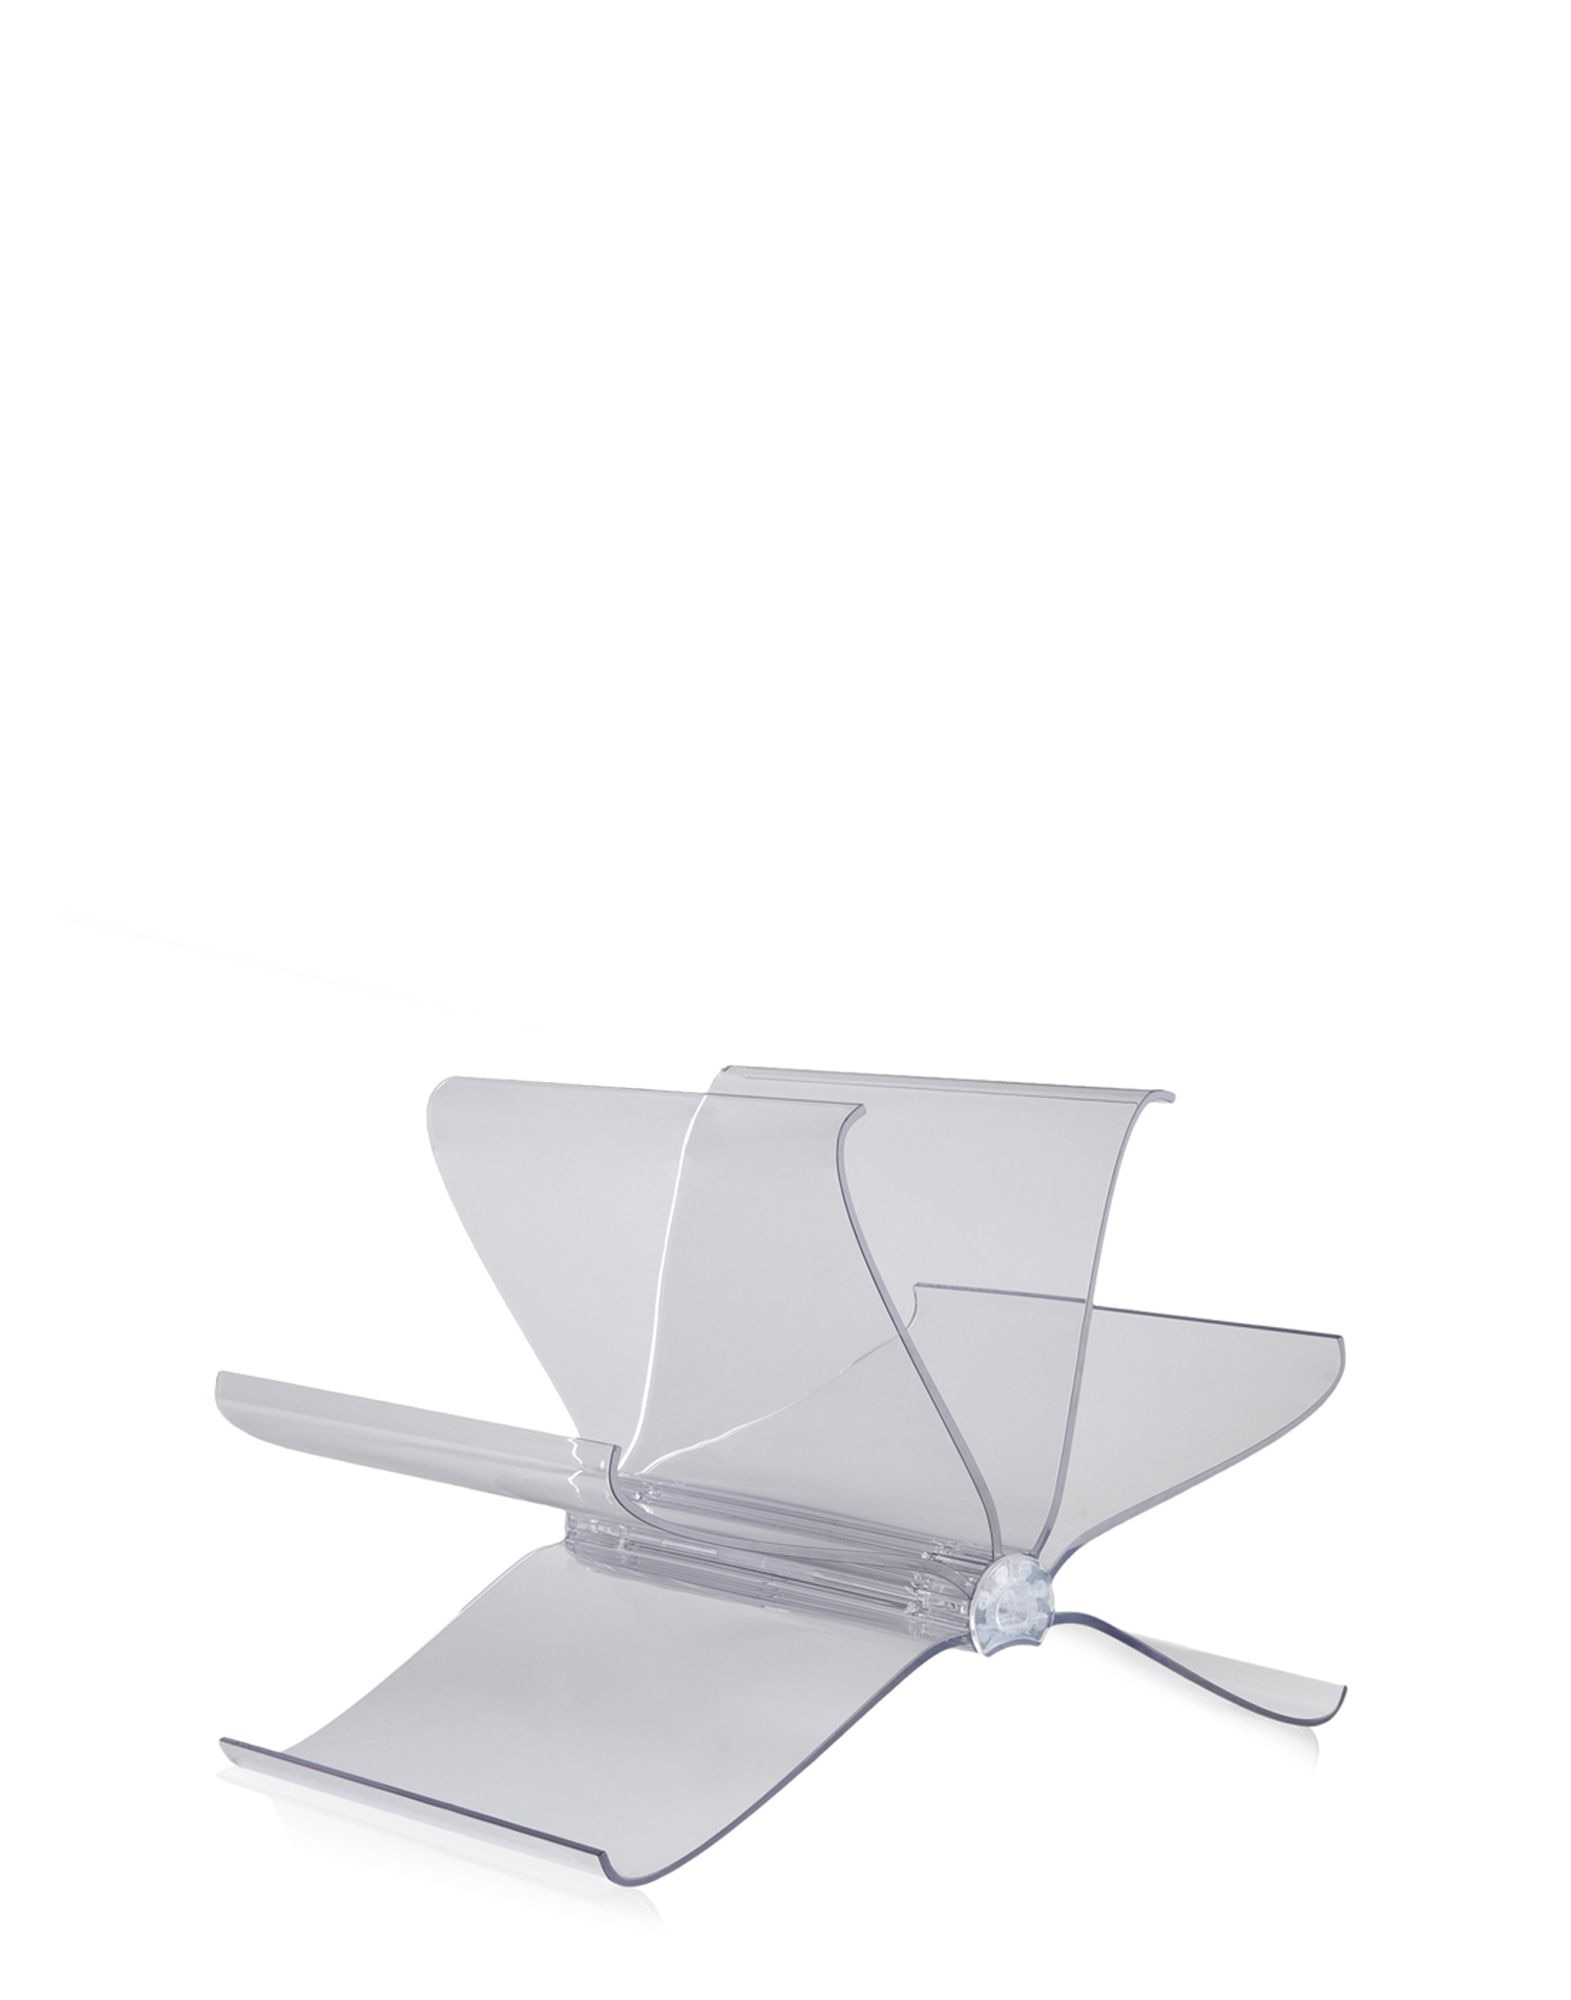 Front Page Magazine Rack in Crystal by Kartell